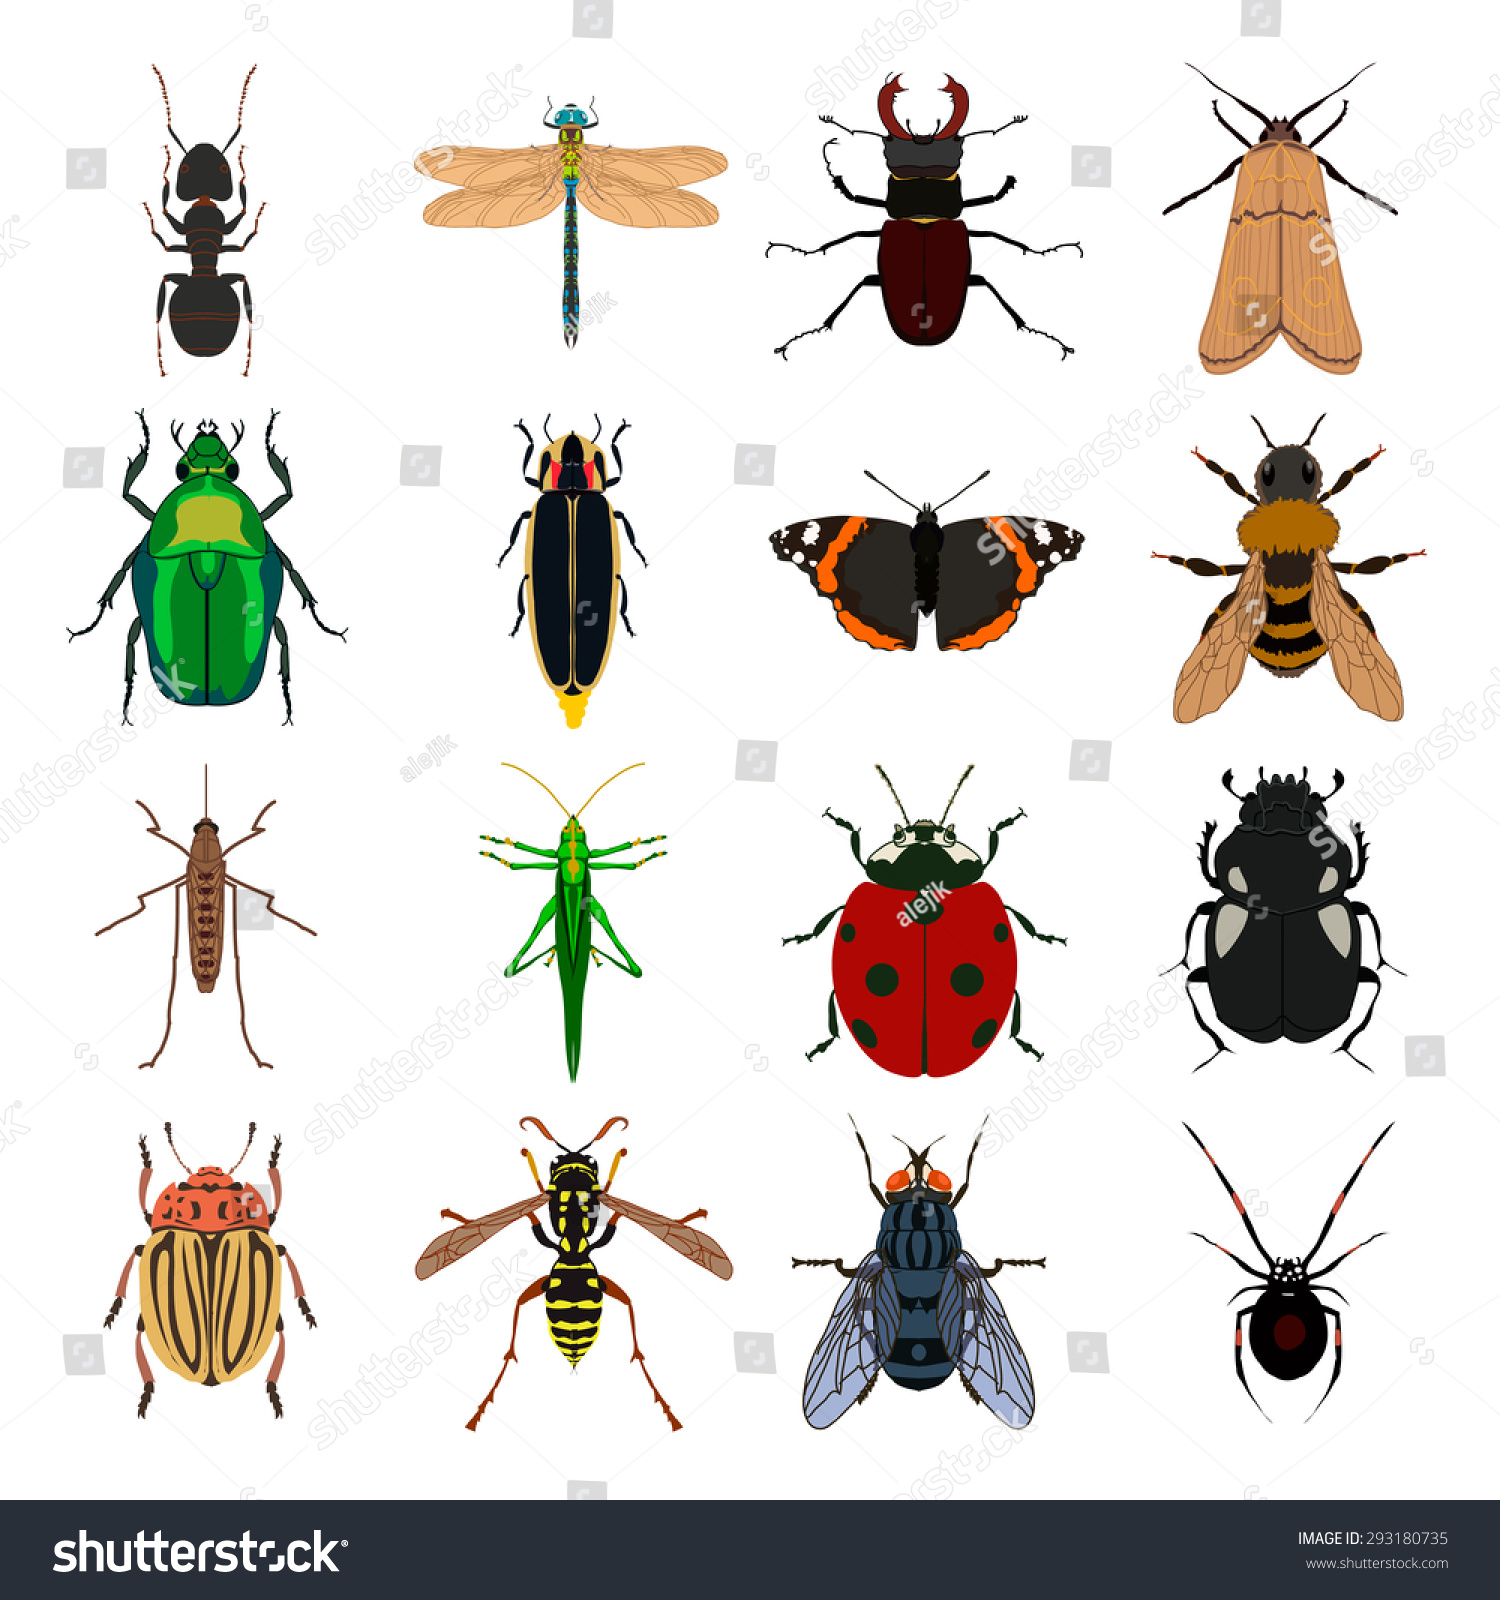 Worksheet Butterfly Beetle insect vector set butterfly wasp tick stock 293180735 ant dragonfly beetle